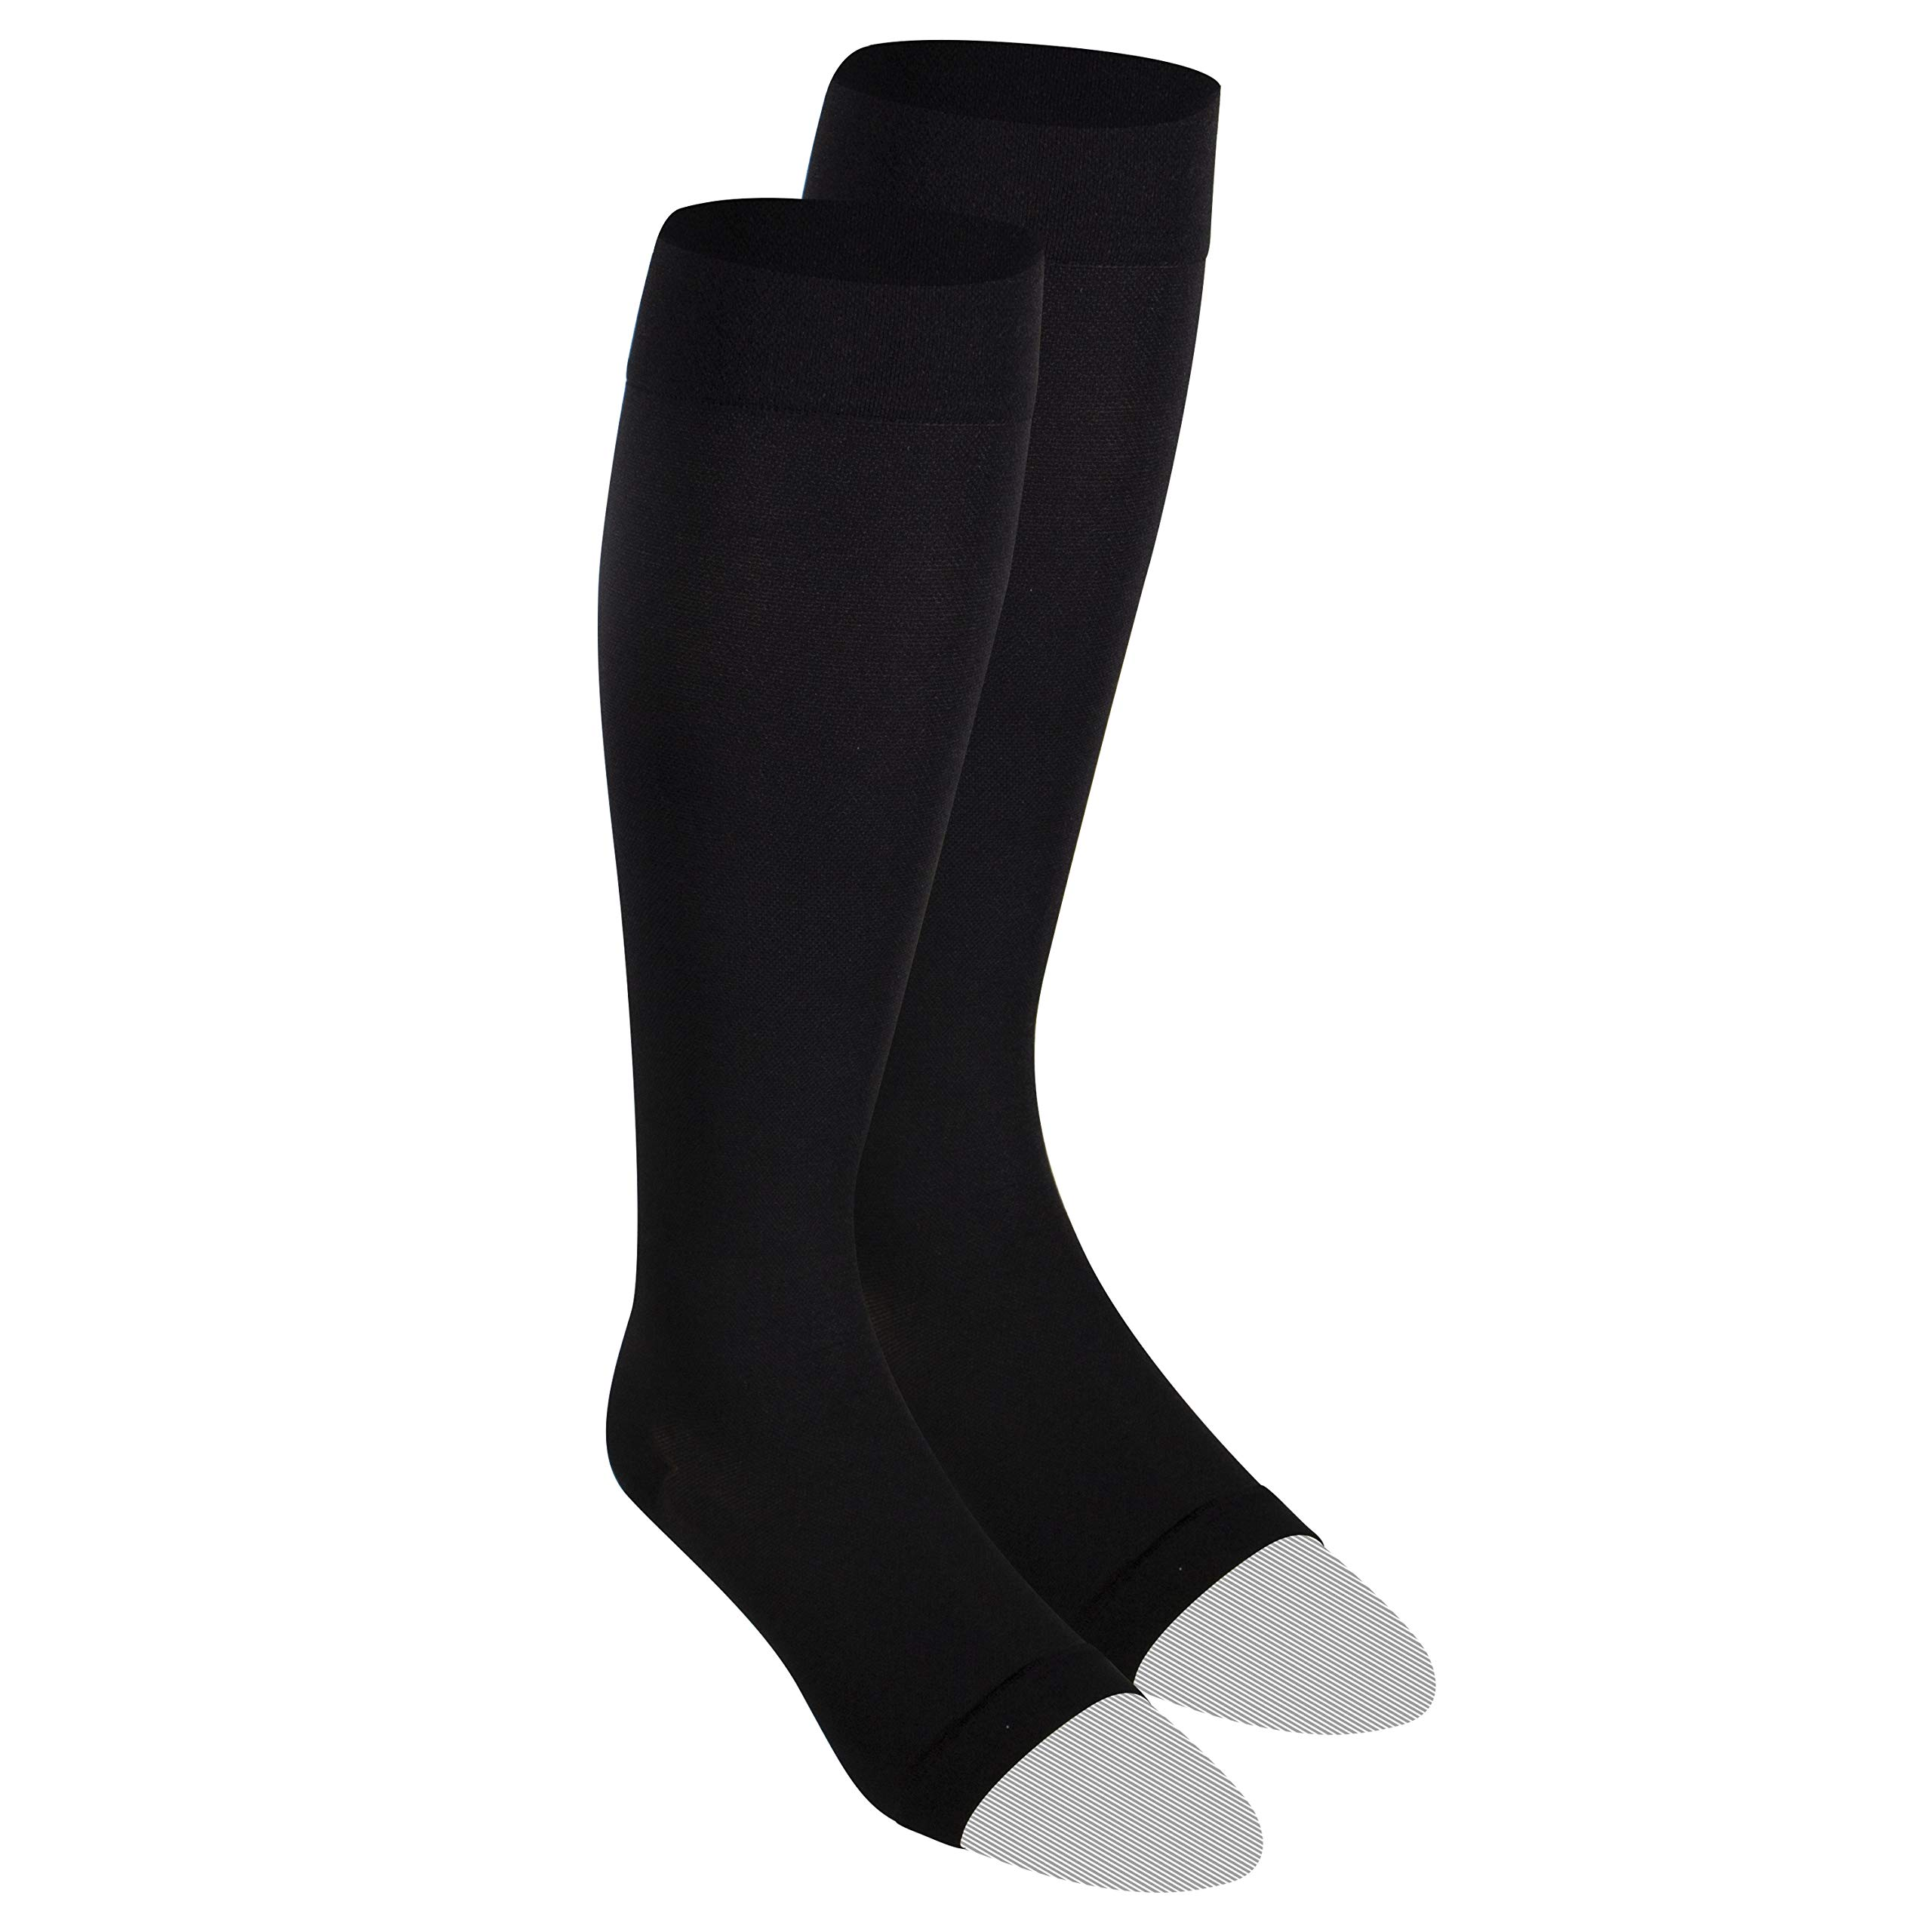 Nuvein Compression Socks for Women and Men, Medical Support Stockings, Black (Open Toe), X-Large (20-30 mmHg)